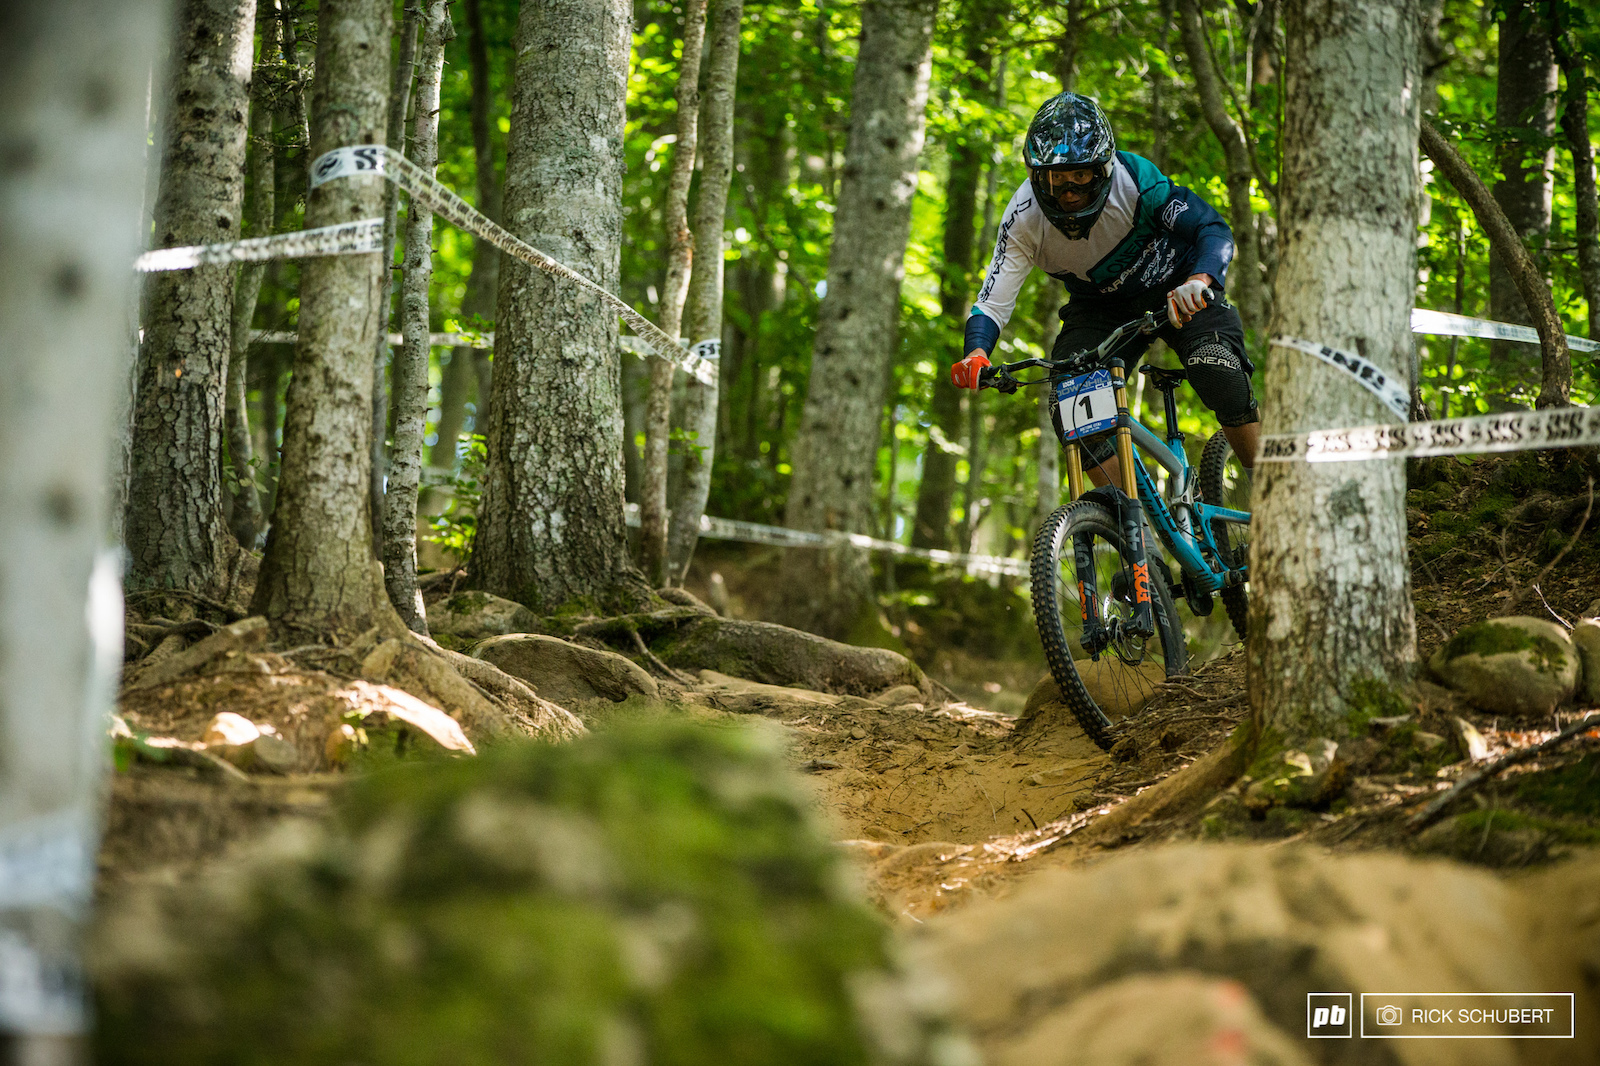 Joshua Barth is going from strenght to strenght this season but the five minute track in Abetone made him struggle a bit. Still he takes another podium and stays up top in the overall